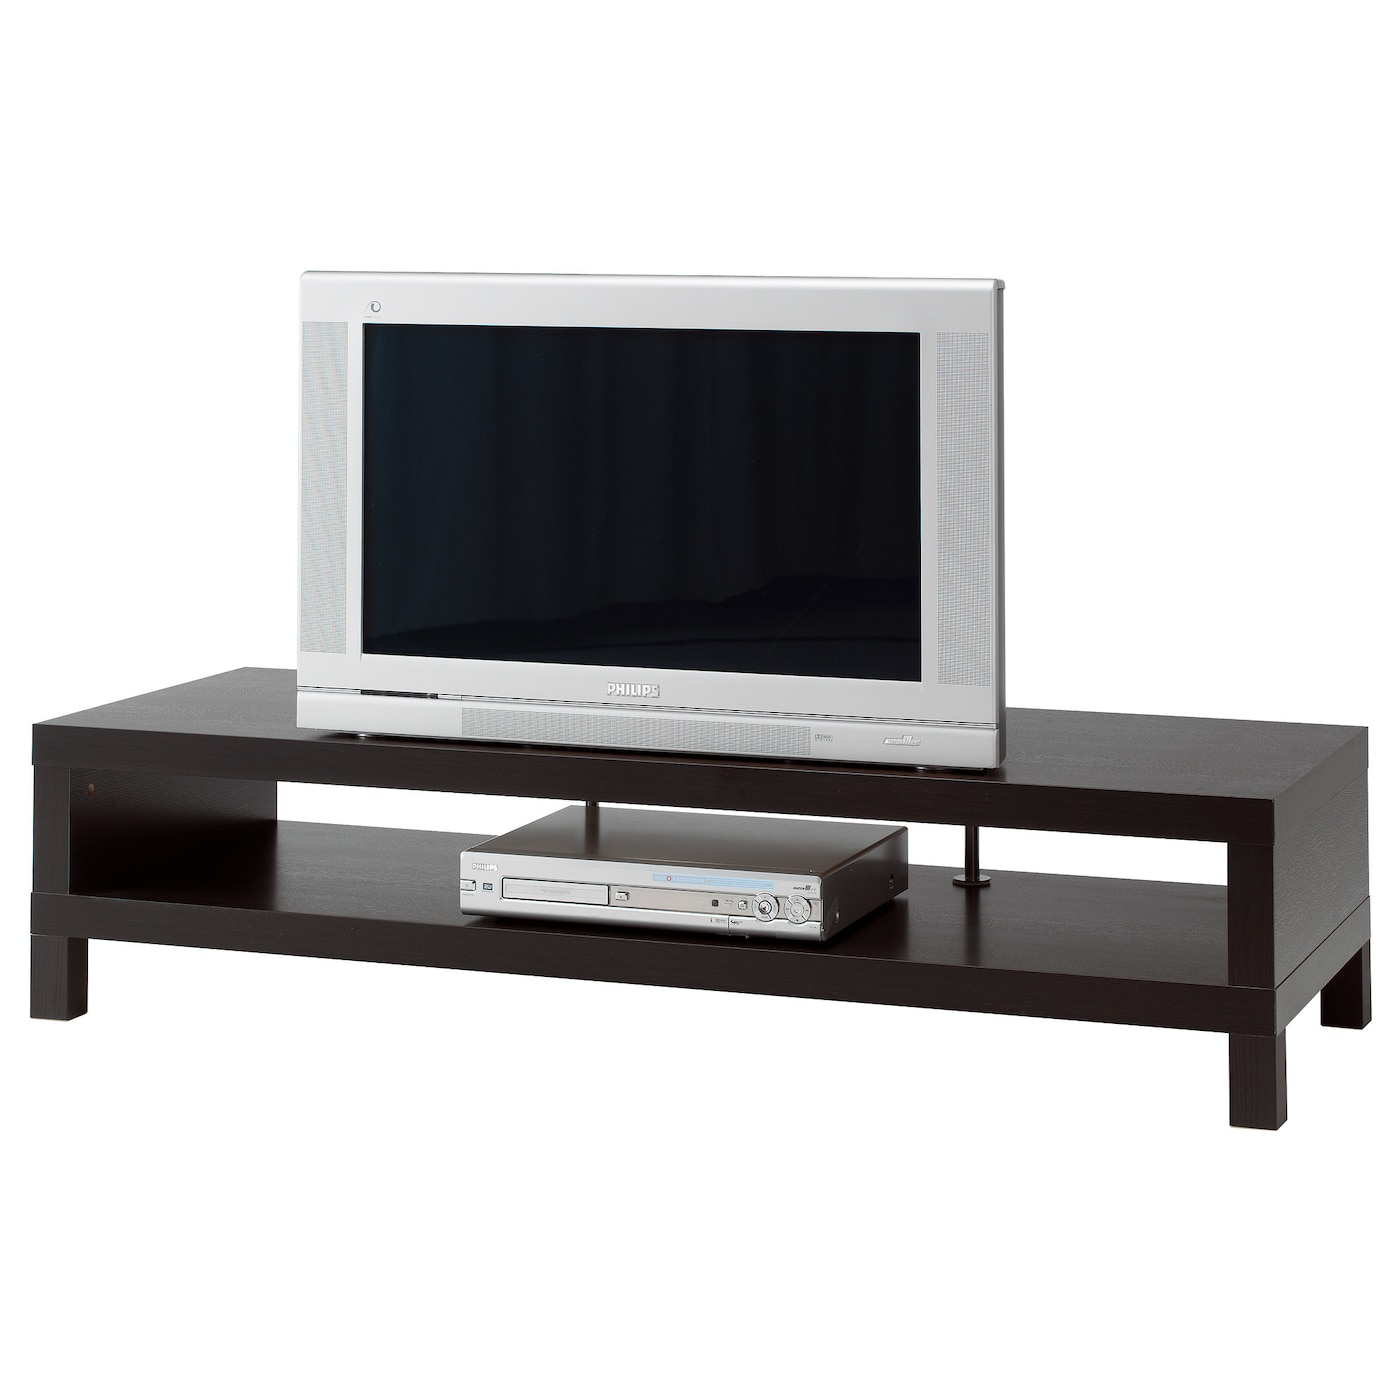 lack tv bench black brown 149x55 cm ikea